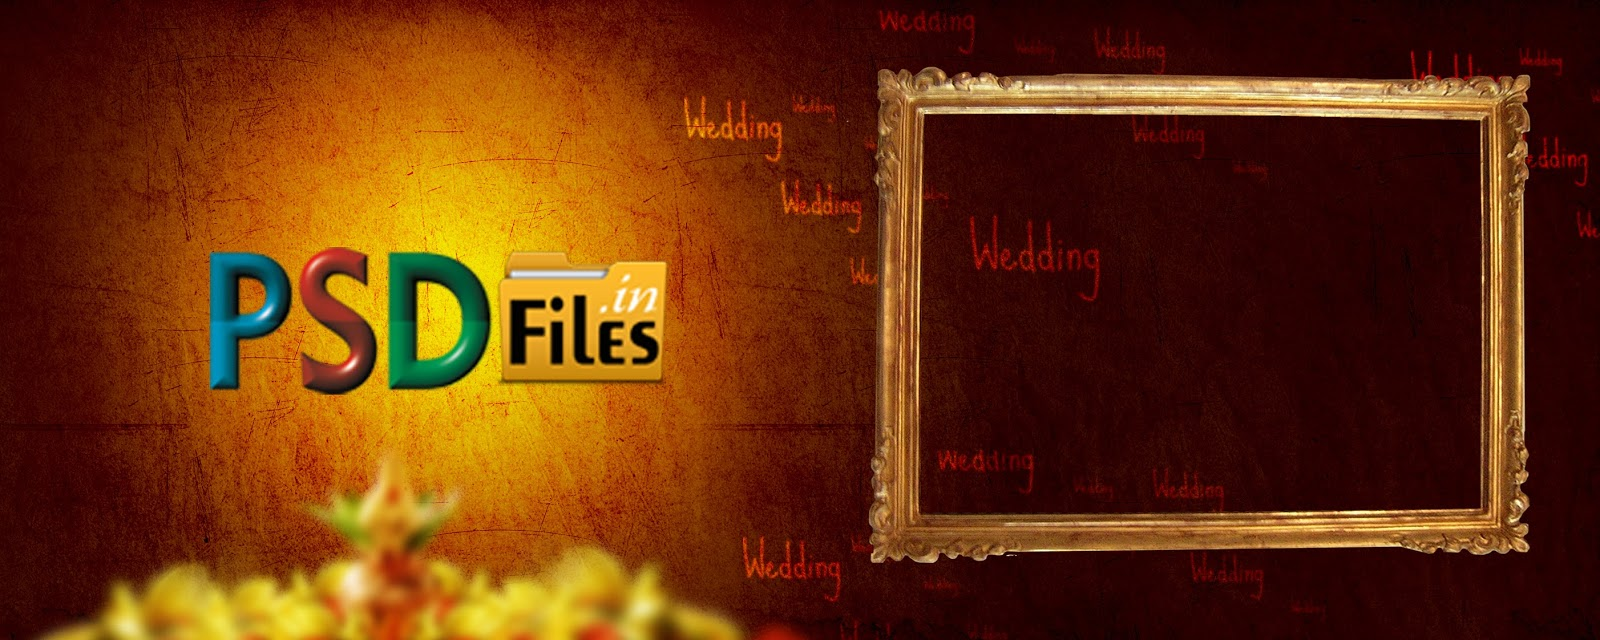 karizma album 12x30 psd wedding background free download ...